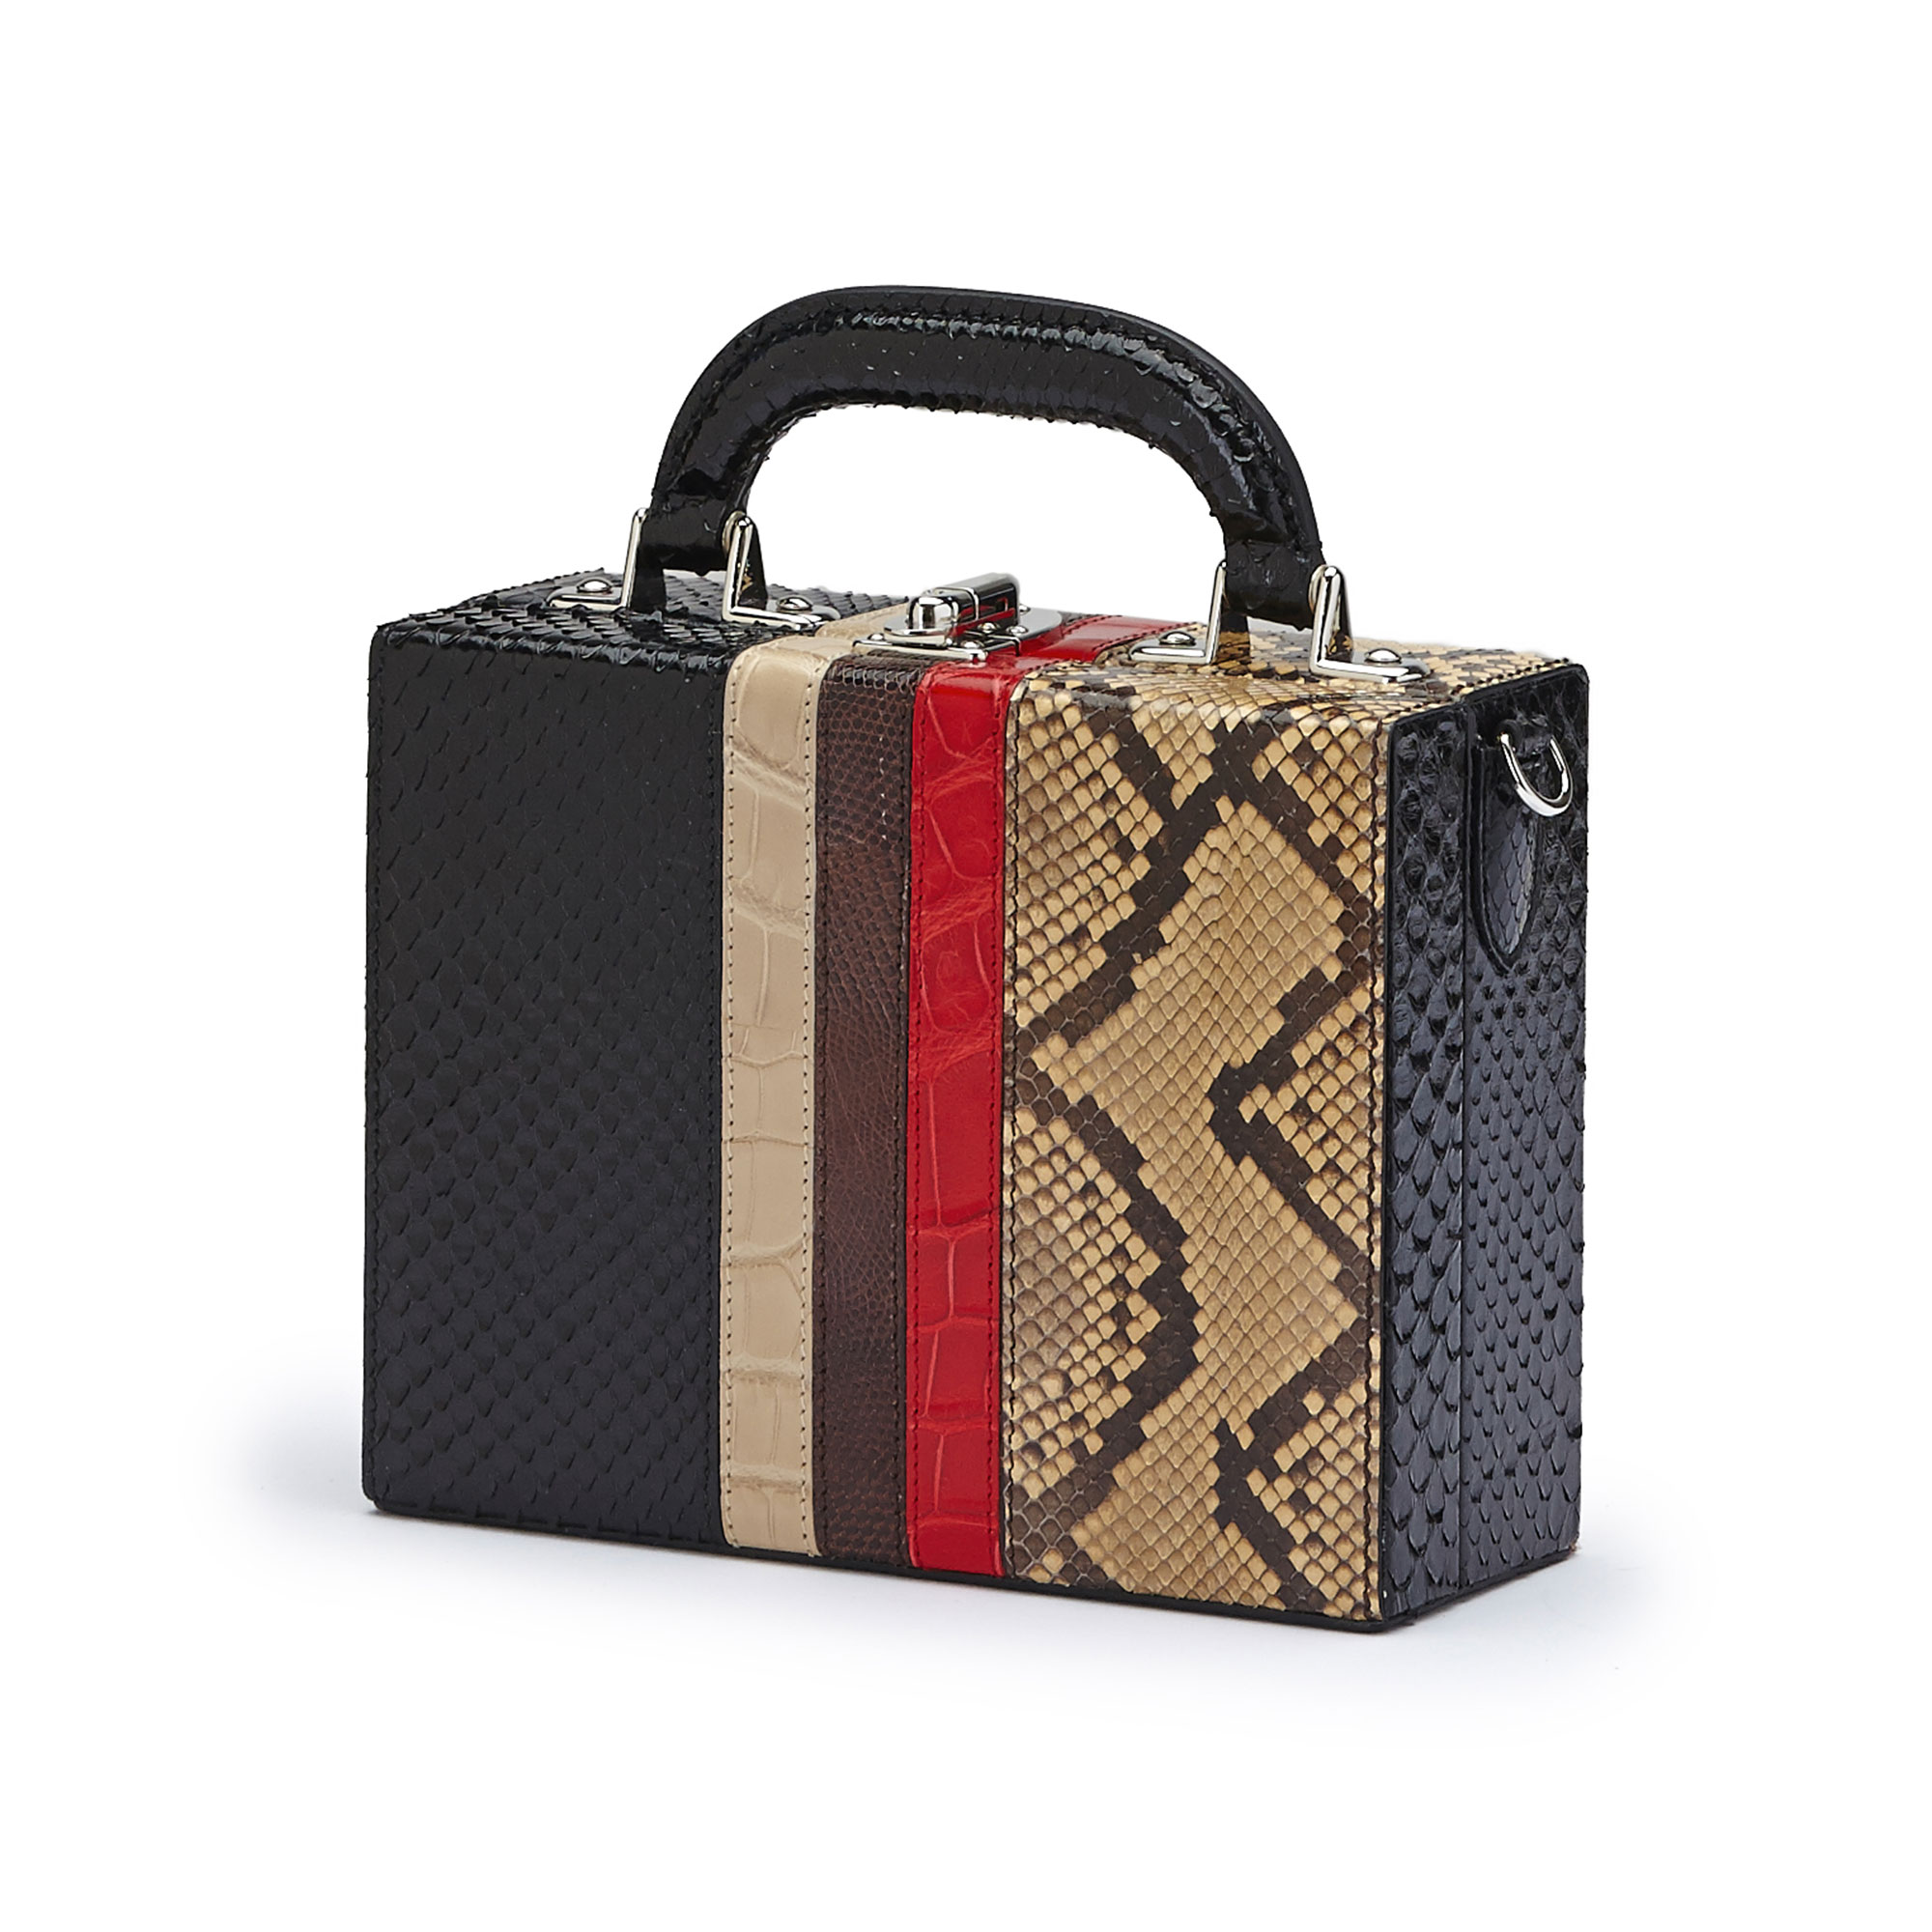 The multi material french calf, alligator, lizard, python Mini Squared Bertoncina bag by Bertoni 1949 02